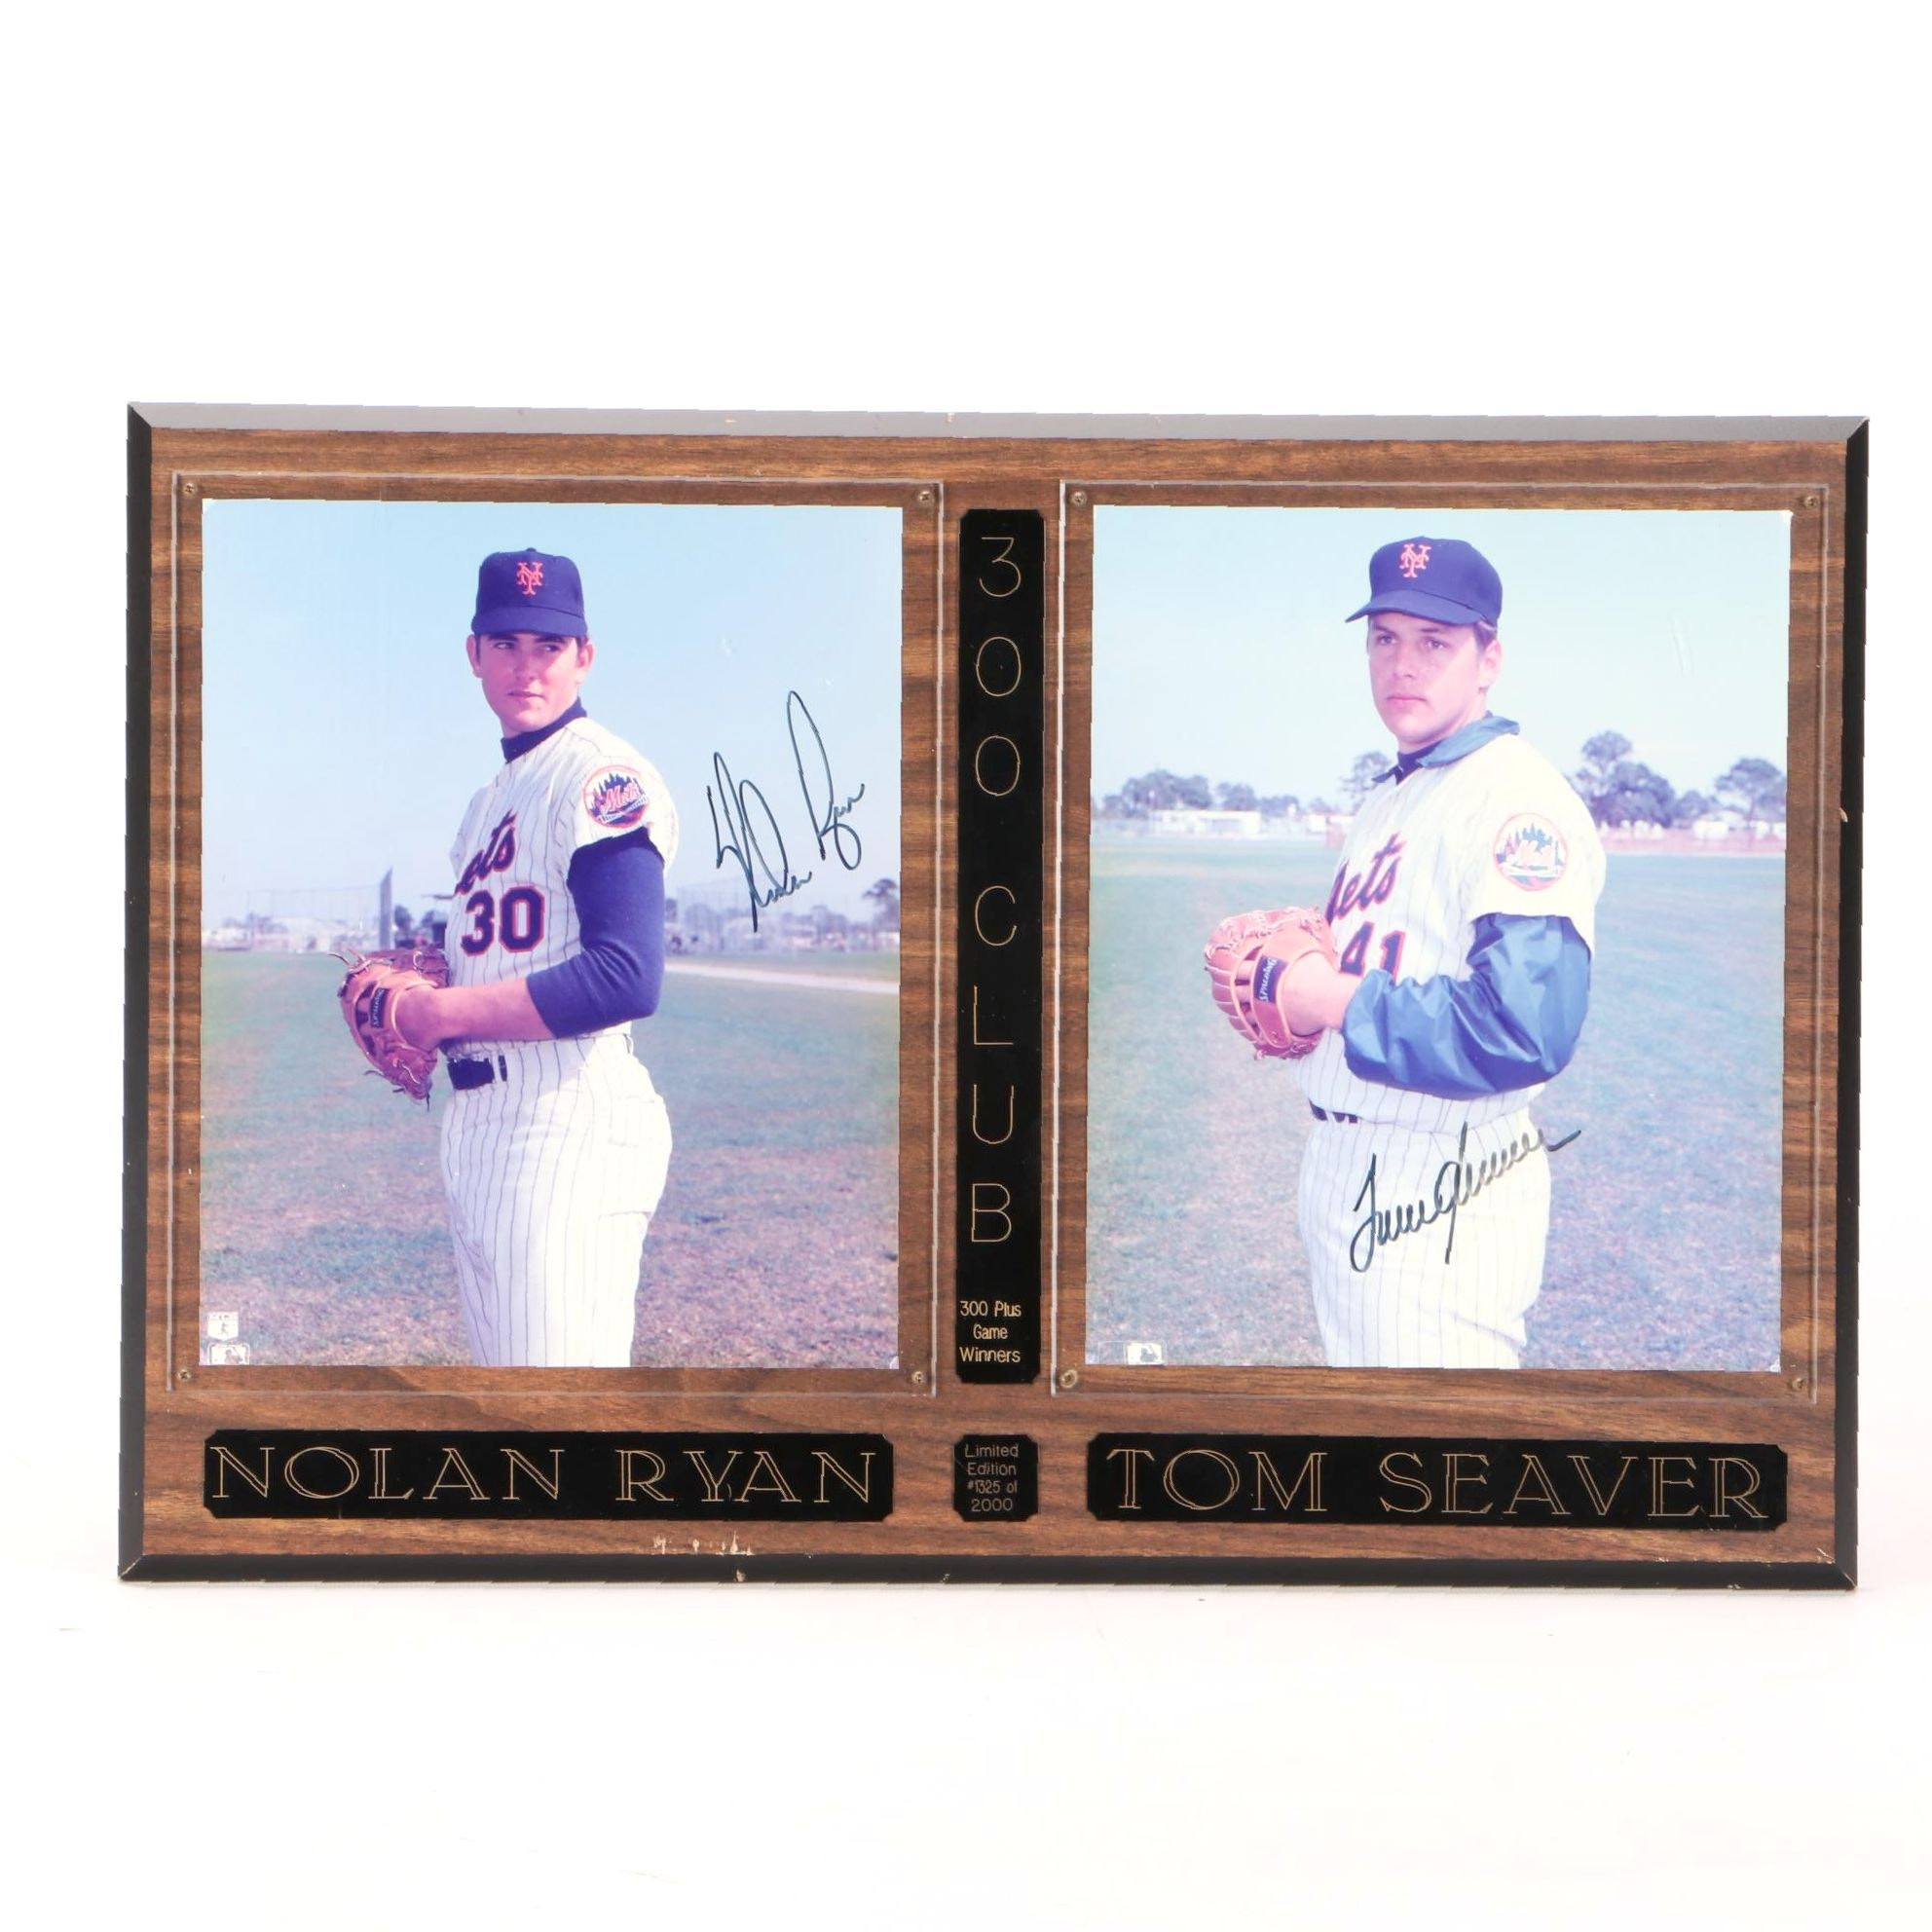 Nolan Ryan and Tom Seaver Mets Signed Display  COA